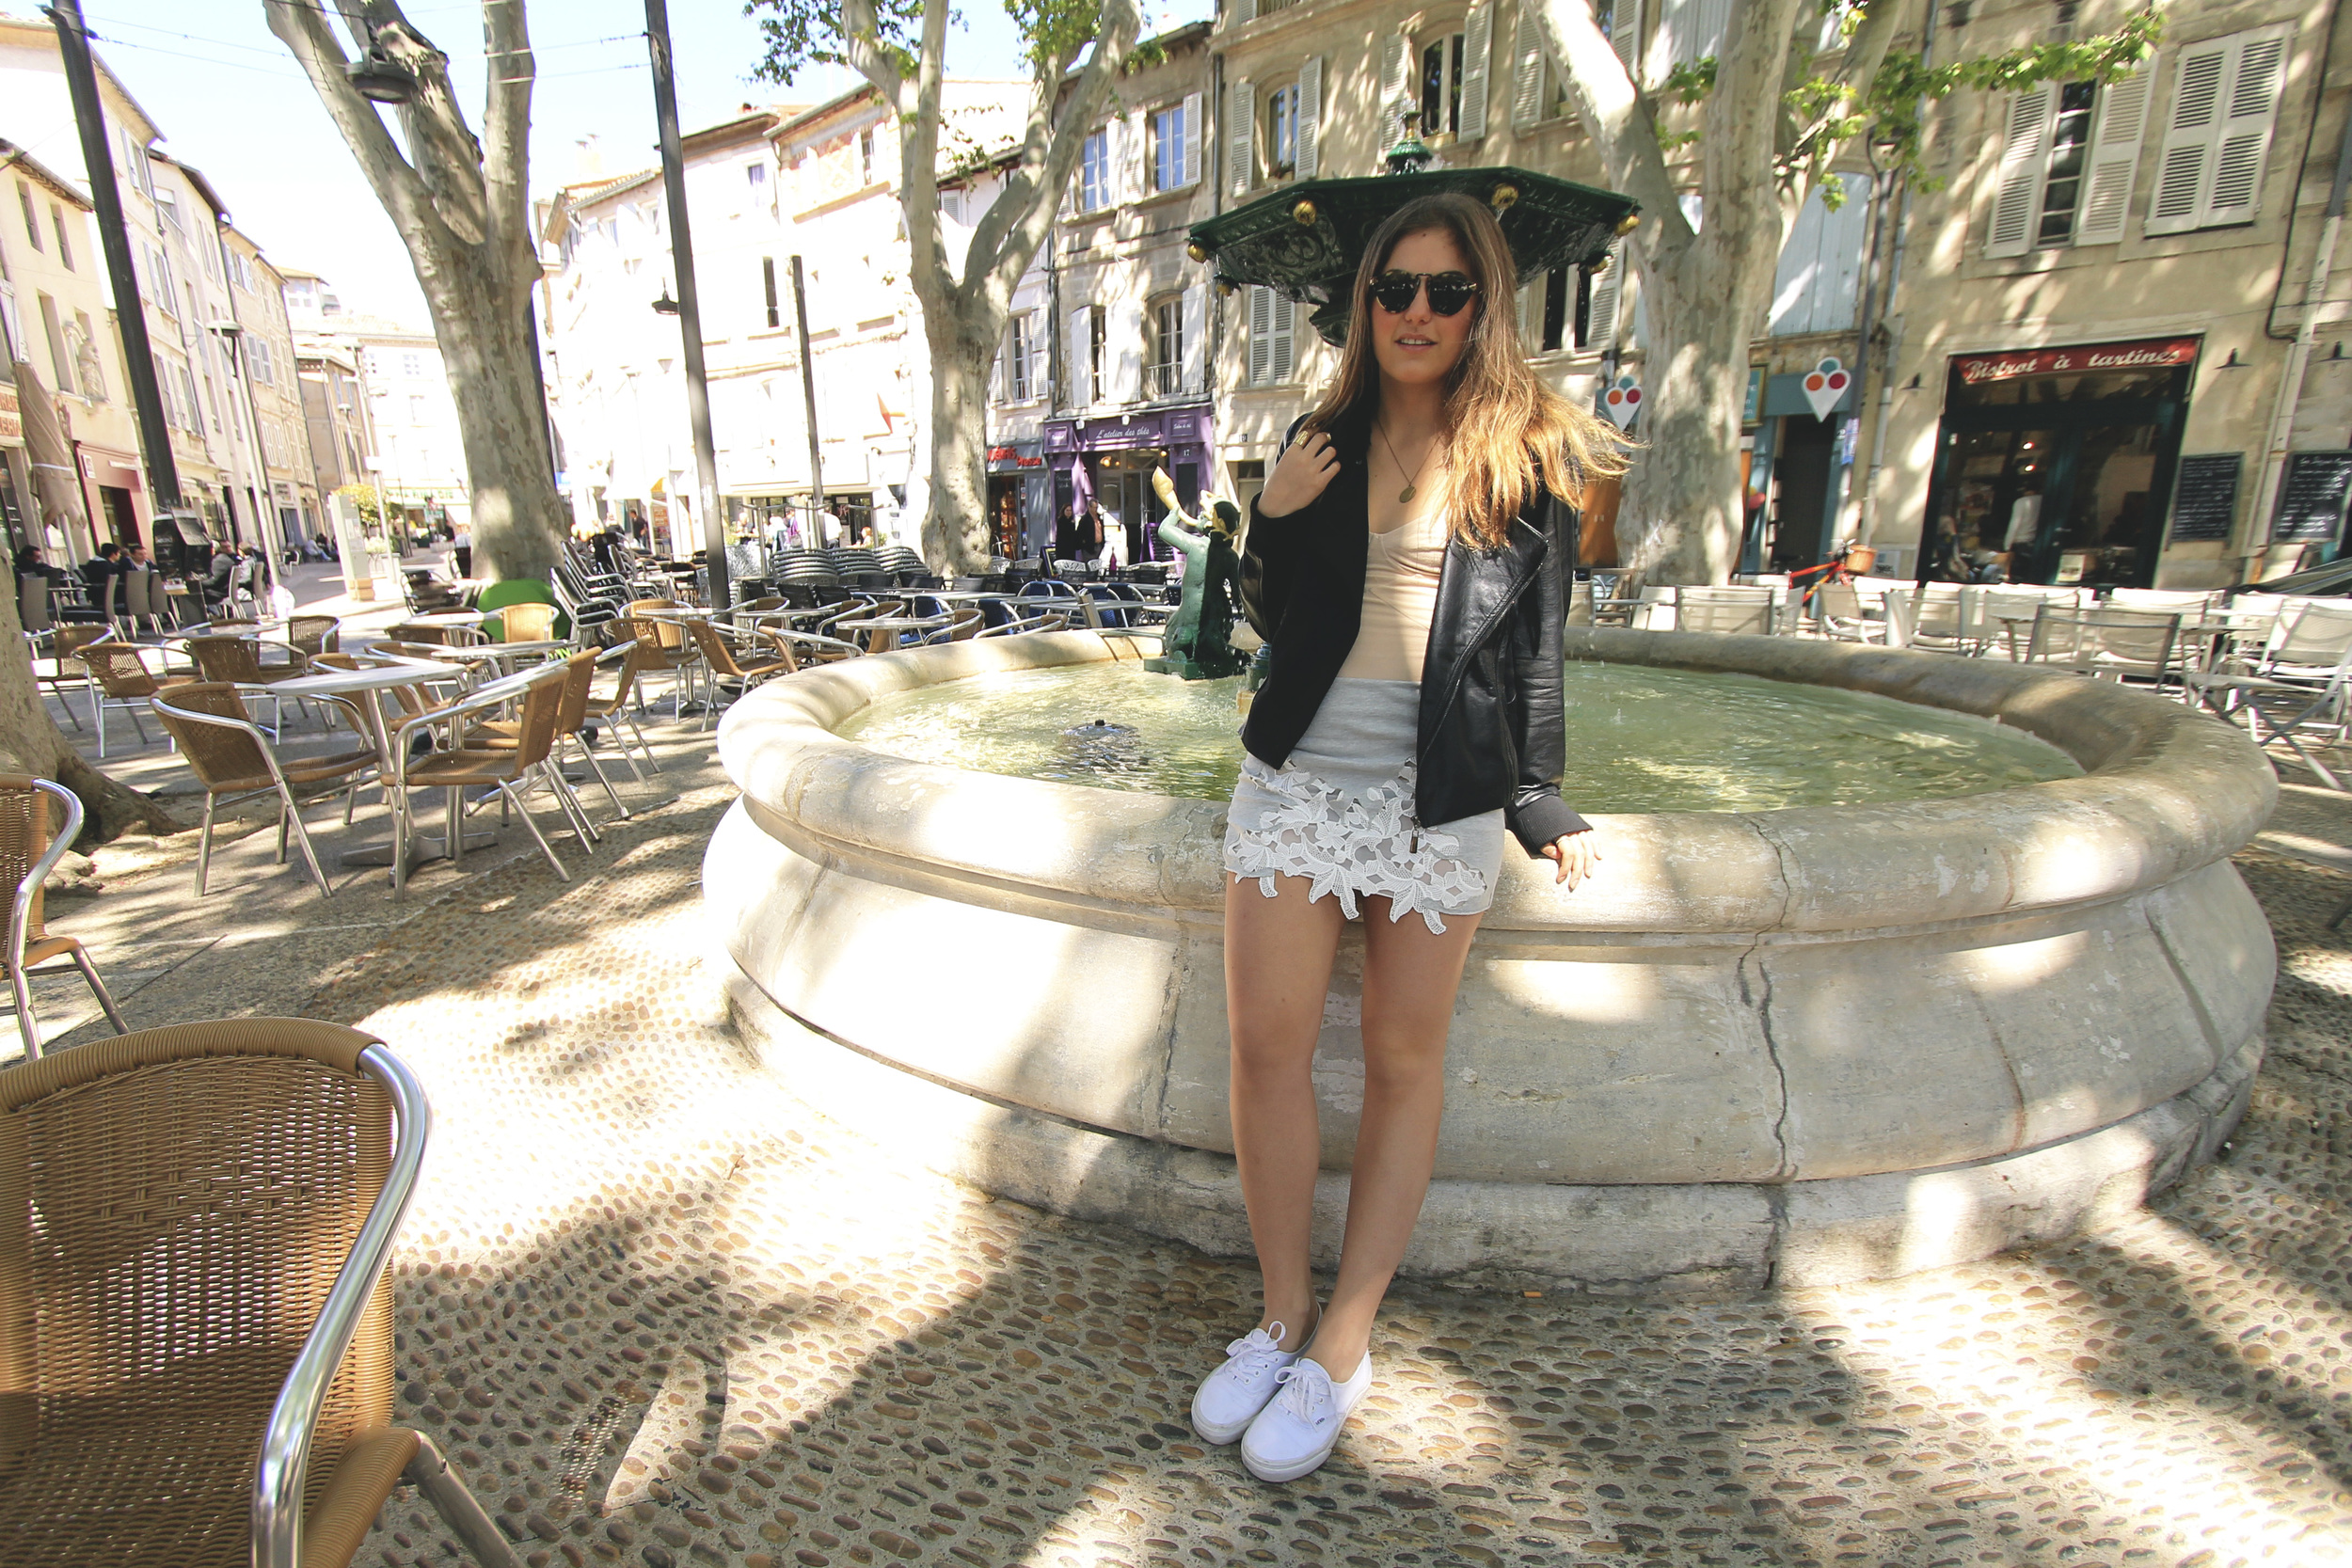 zara grey white floral skirt outfit fountain avignon france